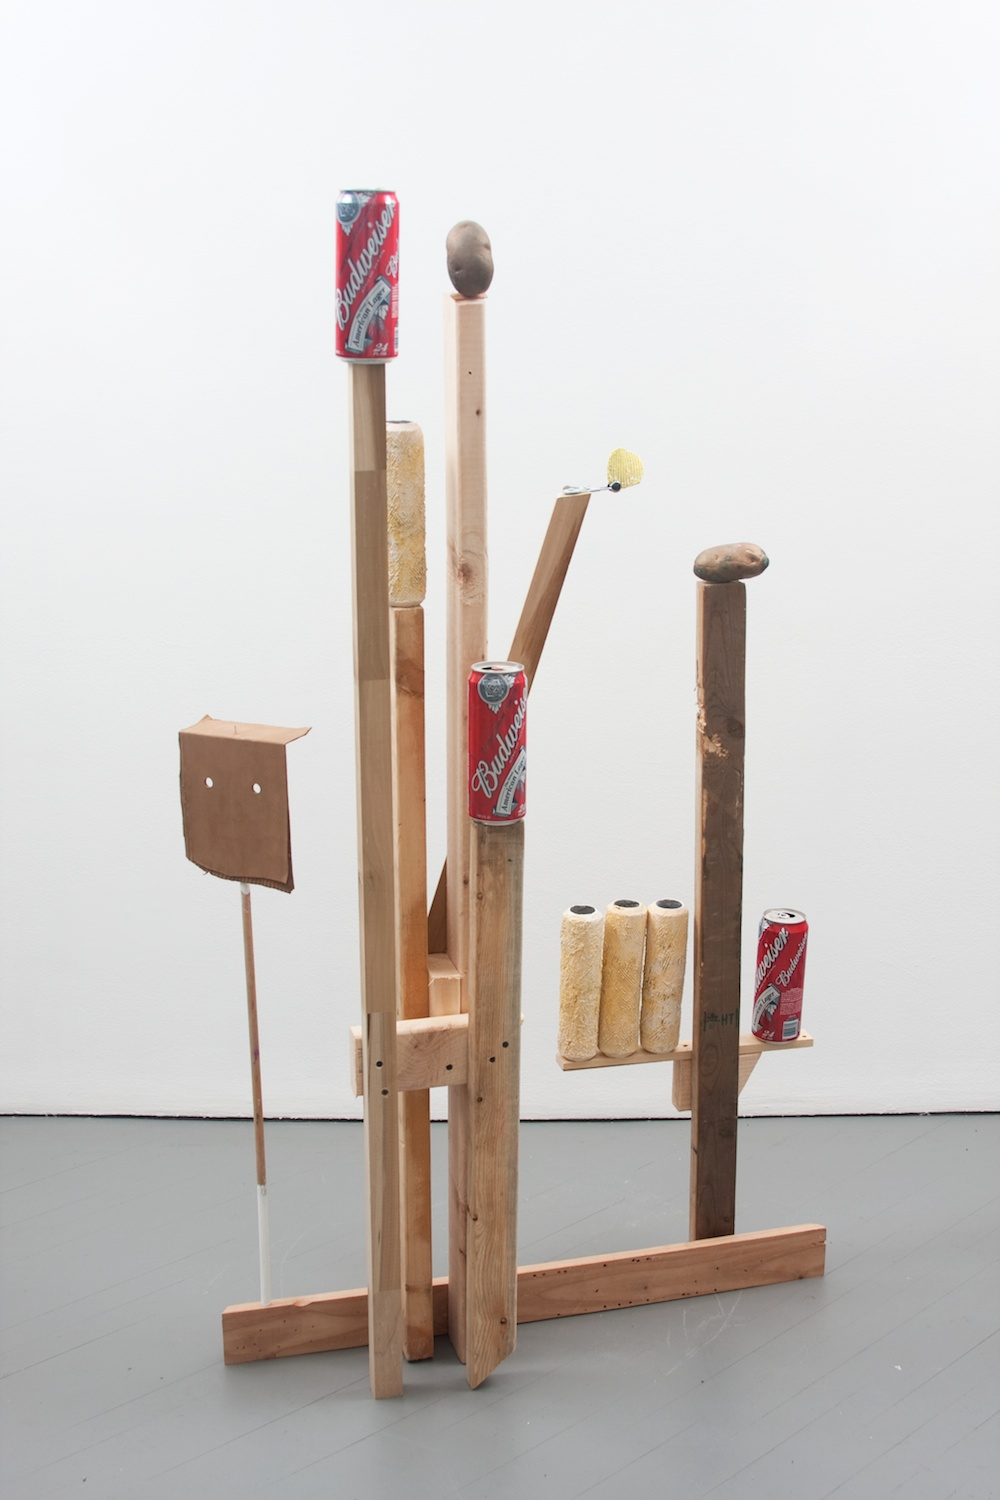 "Chris Bradley Target #1 2011 Aluminum, cast aluminum, cast bronze, paint, wood, beer cans, clamp 62 1/2"" x 35"" x 13"" CB001"